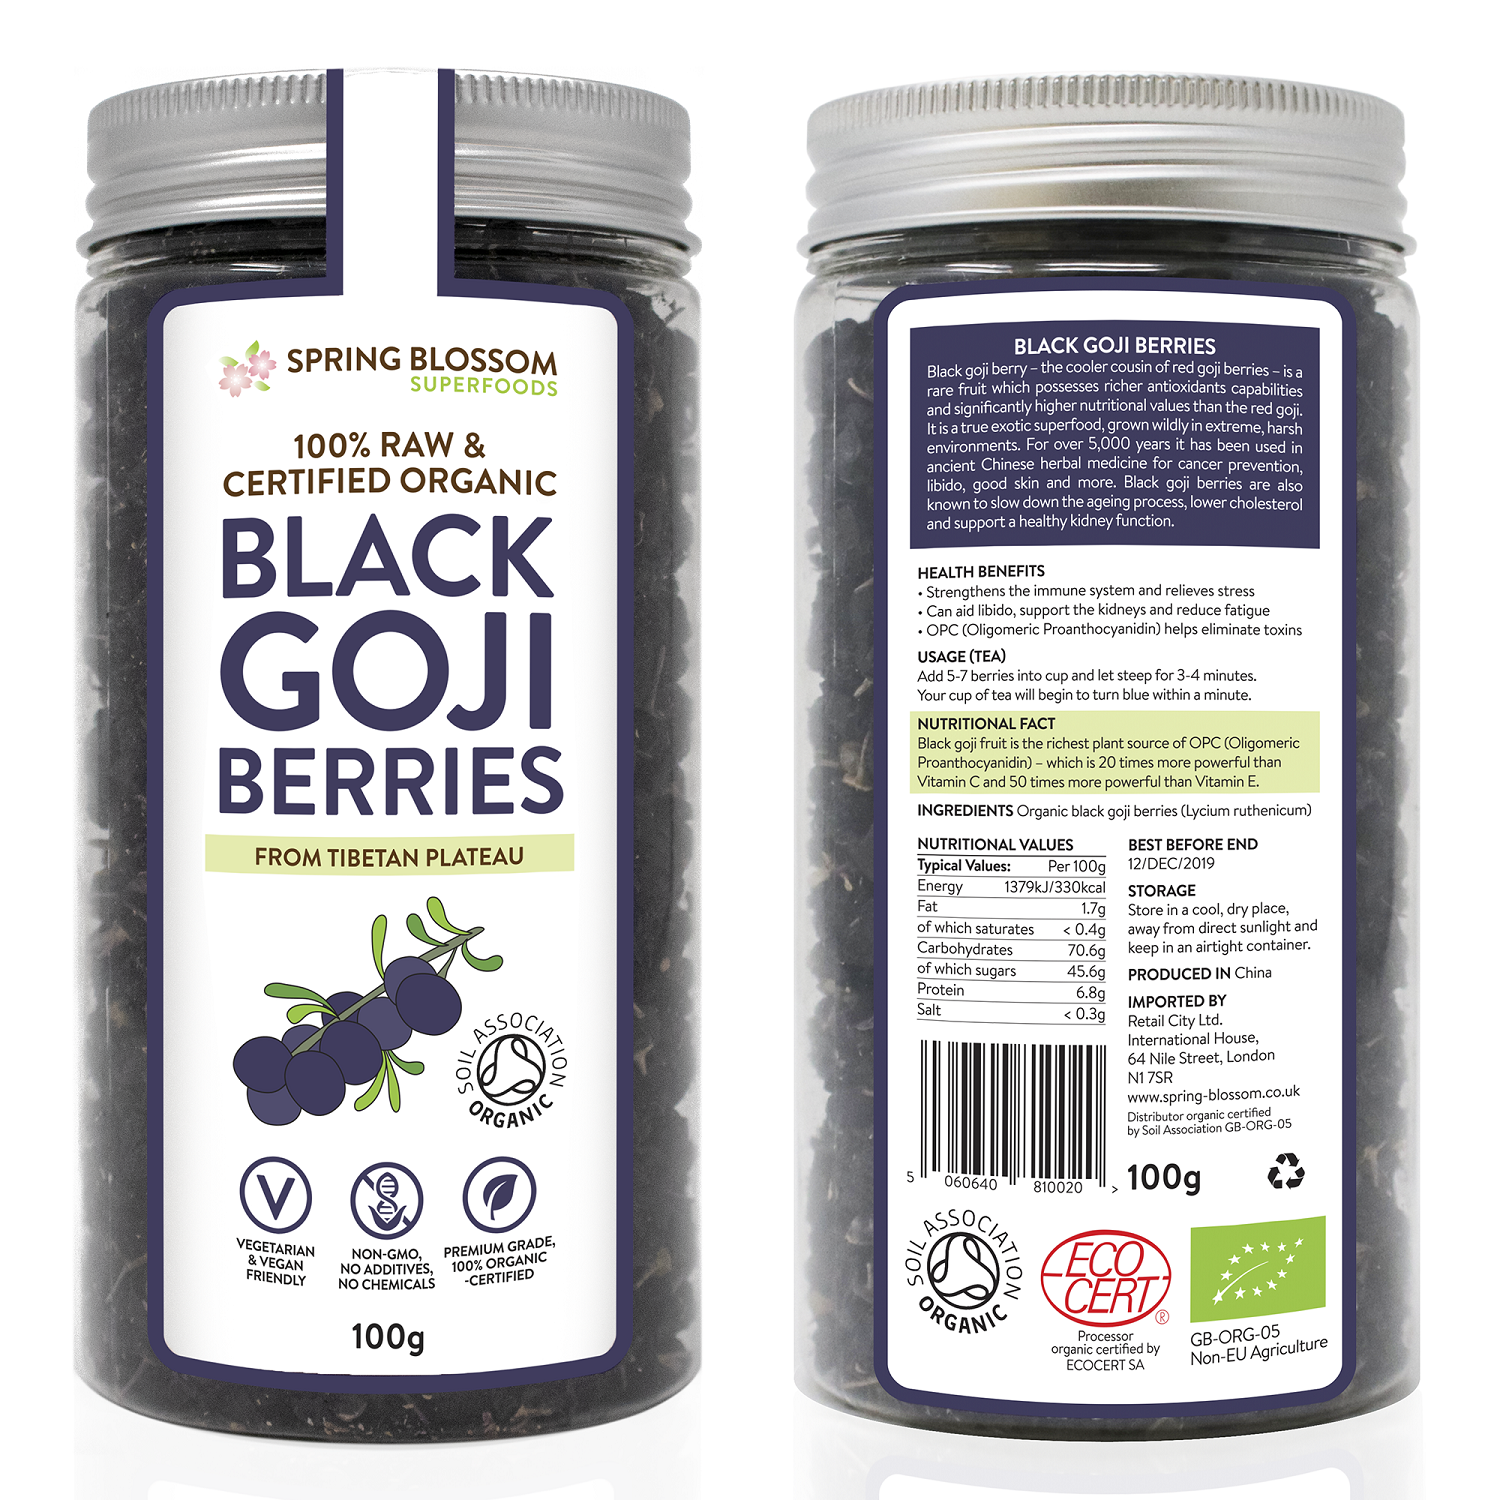 100g Organic Black Goji Berries - Spring Blossom Superfoods